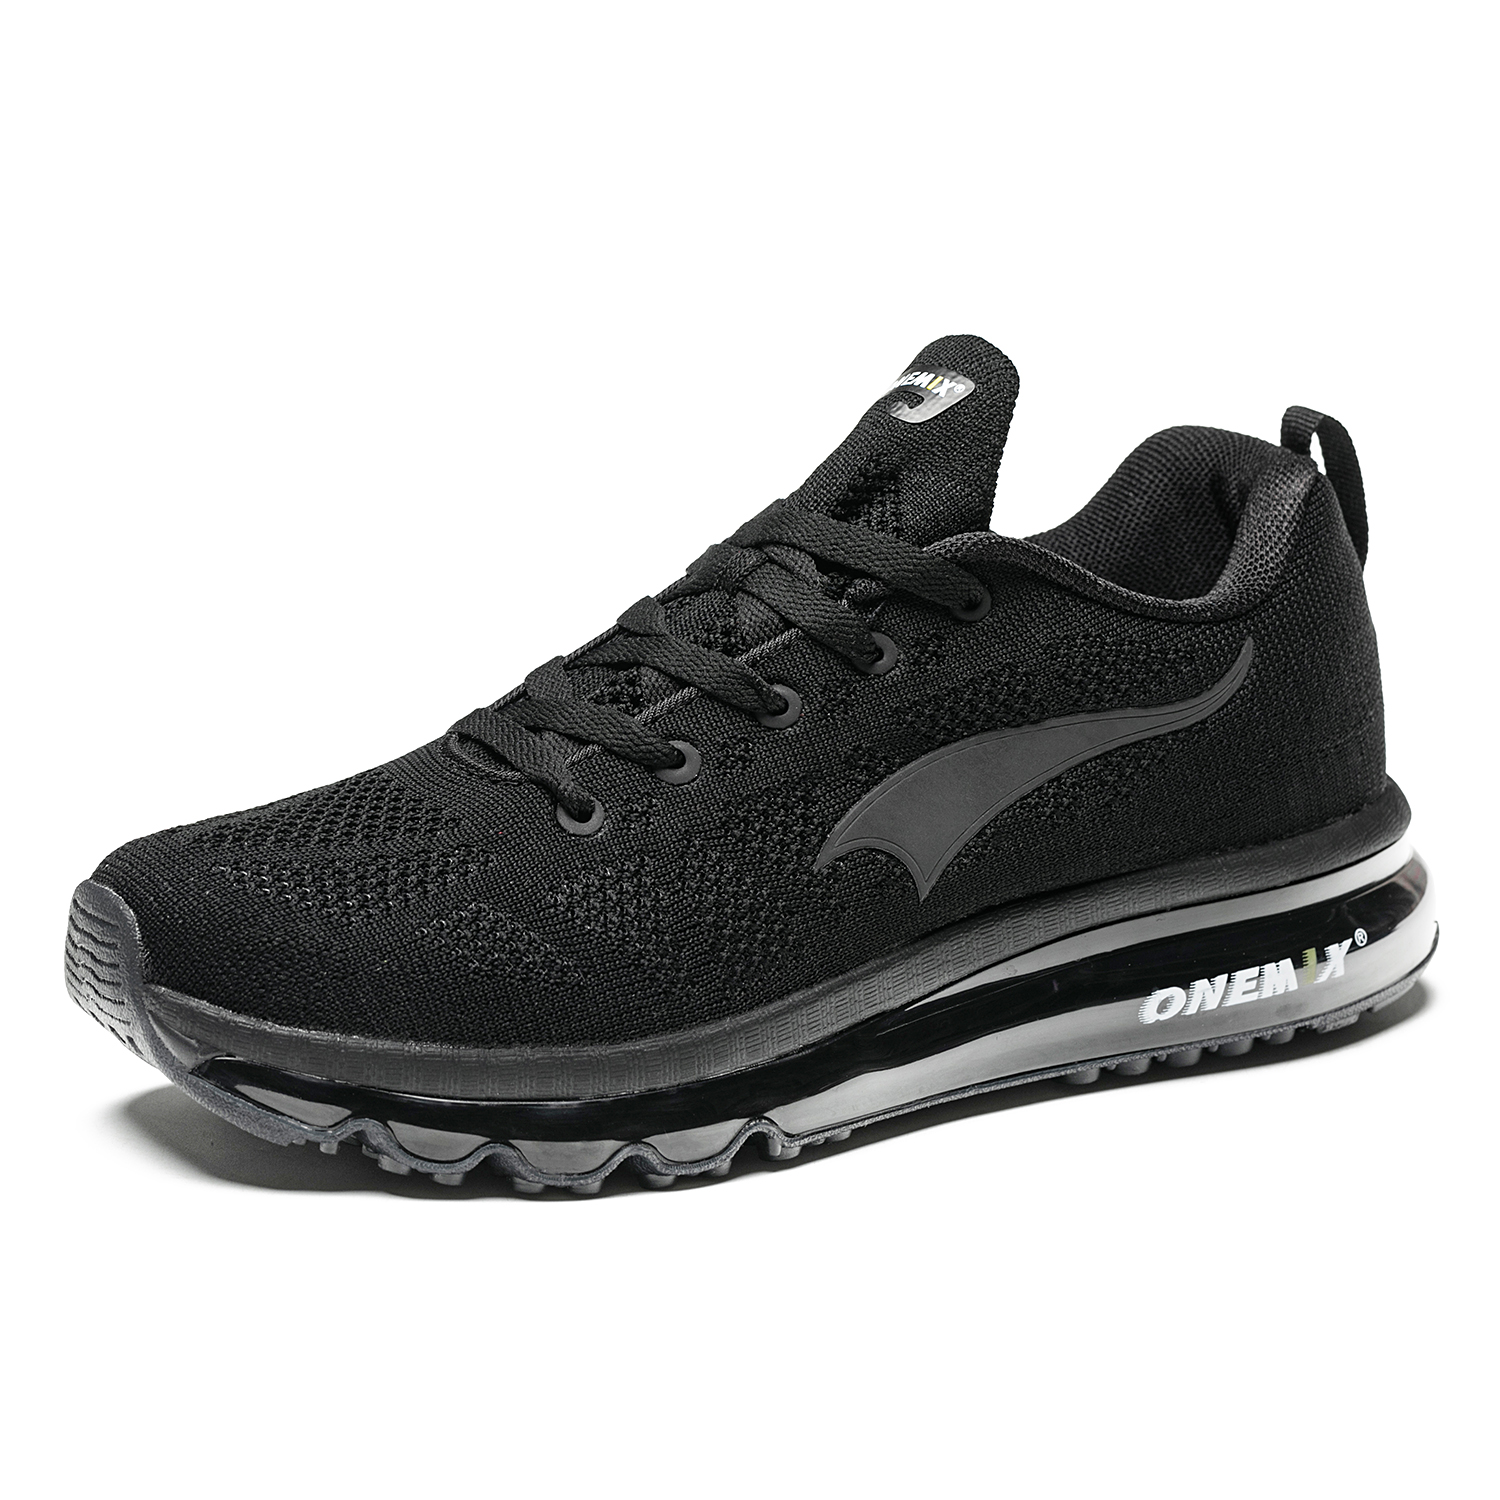 ONEMIX Men Running Shoes 2019 Light Women Sneakers Soft Breathable Mesh Deodorant insole Outdoor Athletic Walking Jogging ShoesONEMIX Men Running Shoes 2019 Light Women Sneakers Soft Breathable Mesh Deodorant insole Outdoor Athletic Walking Jogging Shoes